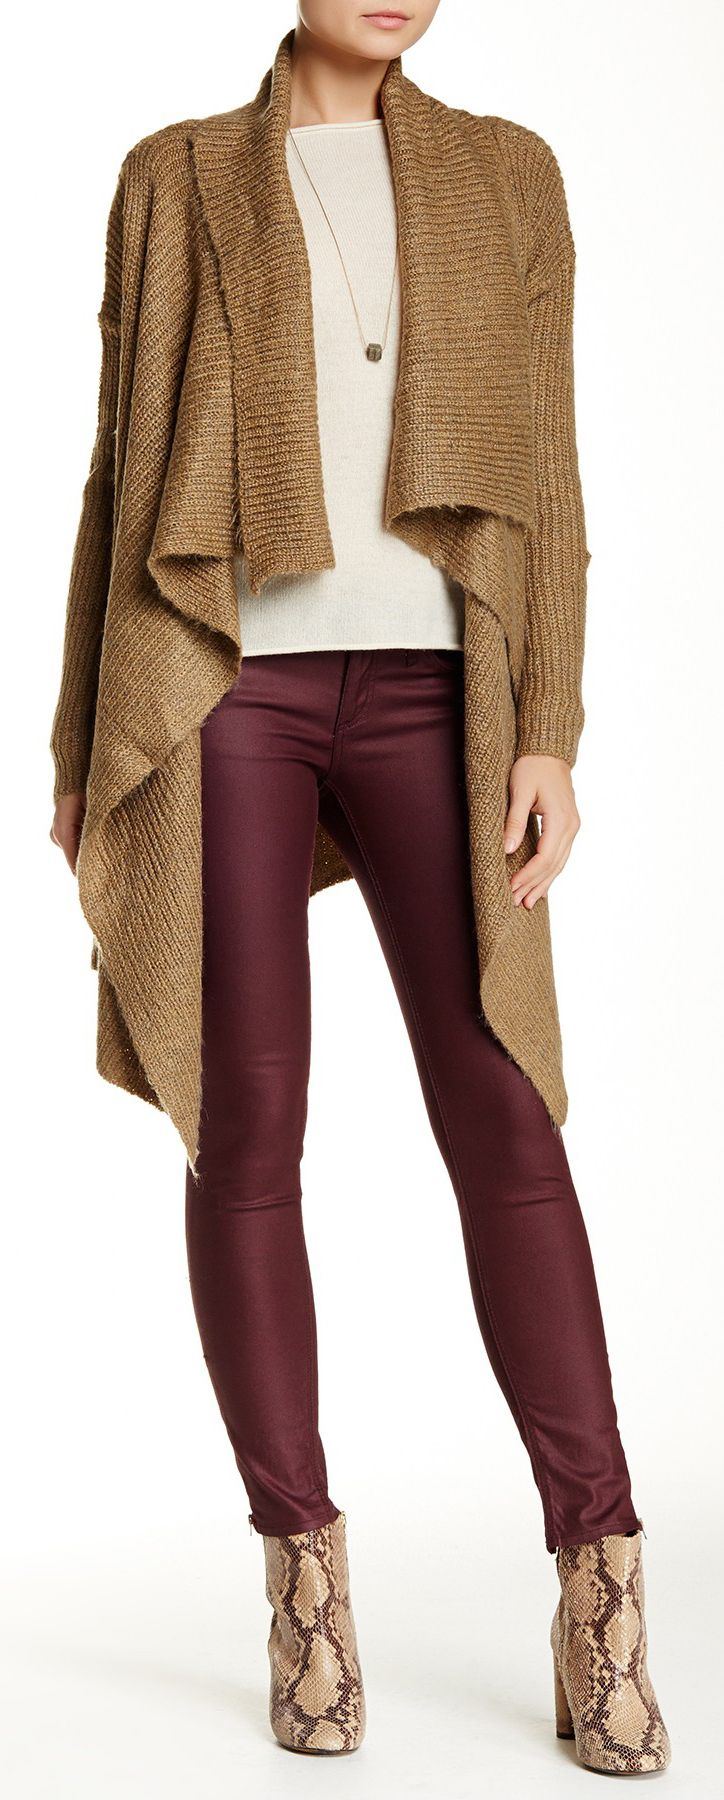 159 best Camel Coat Outfits images on Pinterest   Beautiful ...